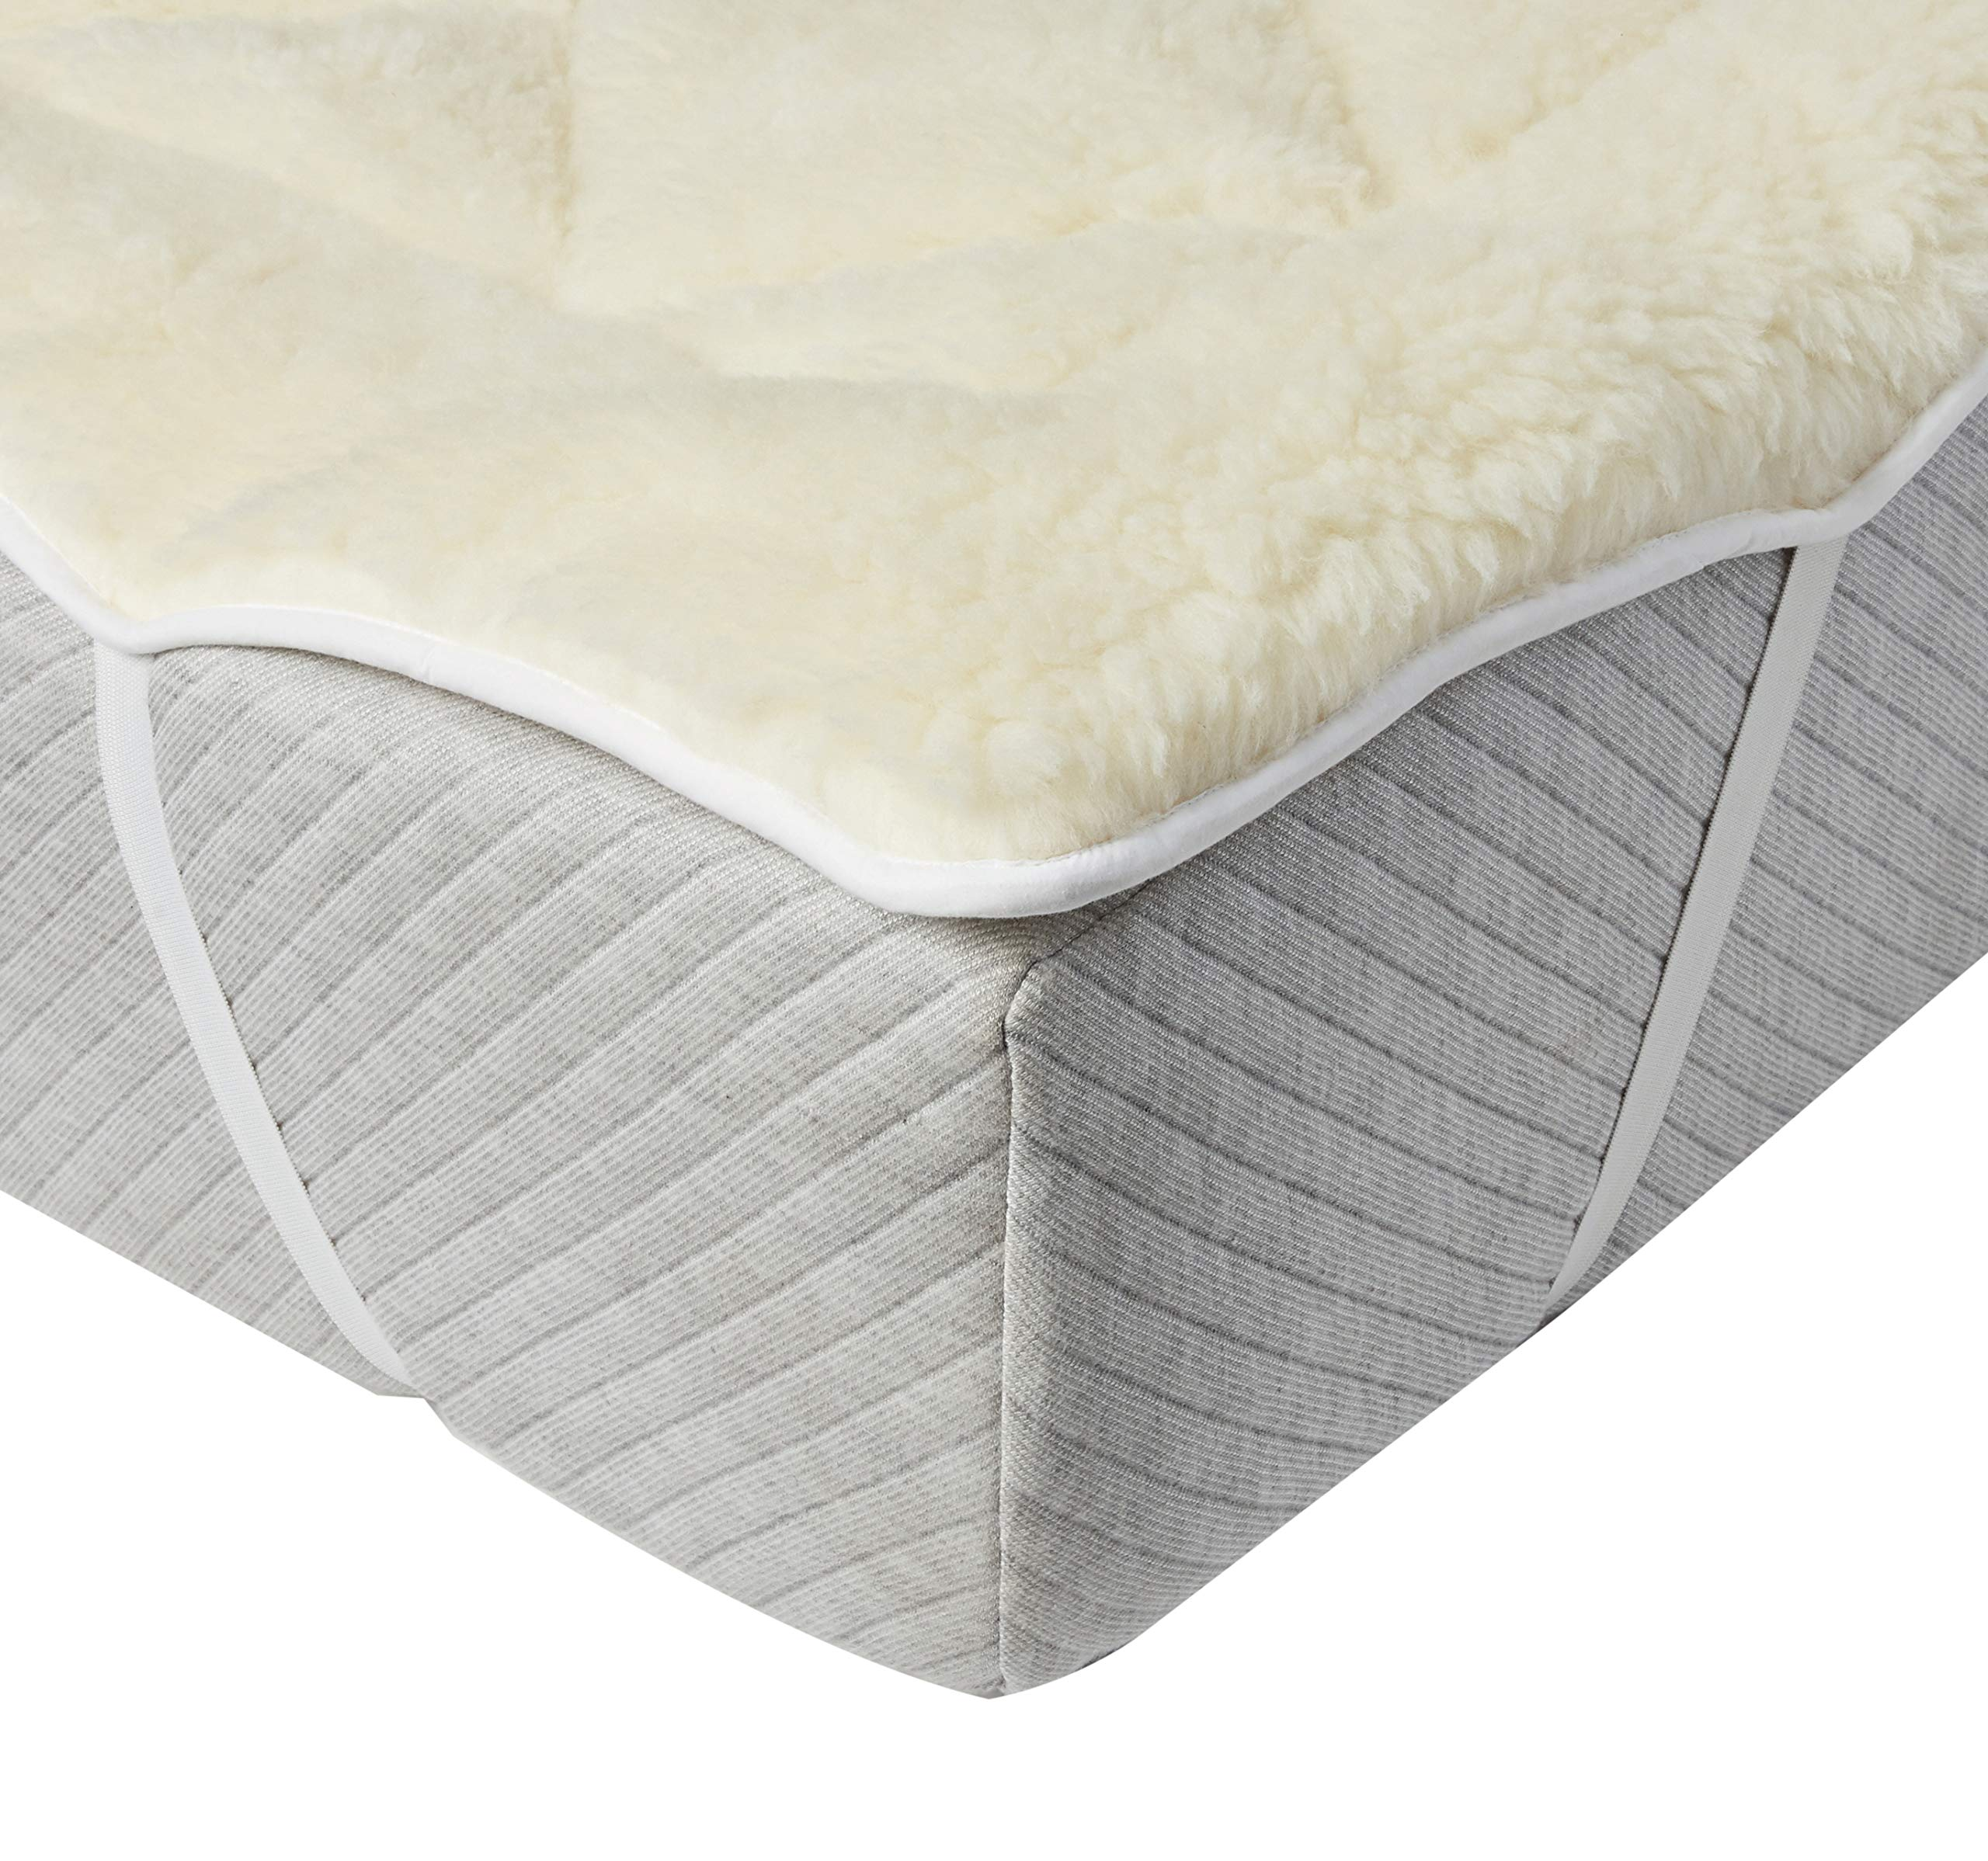 MATTRESS PROTECTOR NIGHTS WATERPROOF PILLOW PROTECTOR PAIR White FOOTTEE FITTED SHEET FOR DOUBLE BED